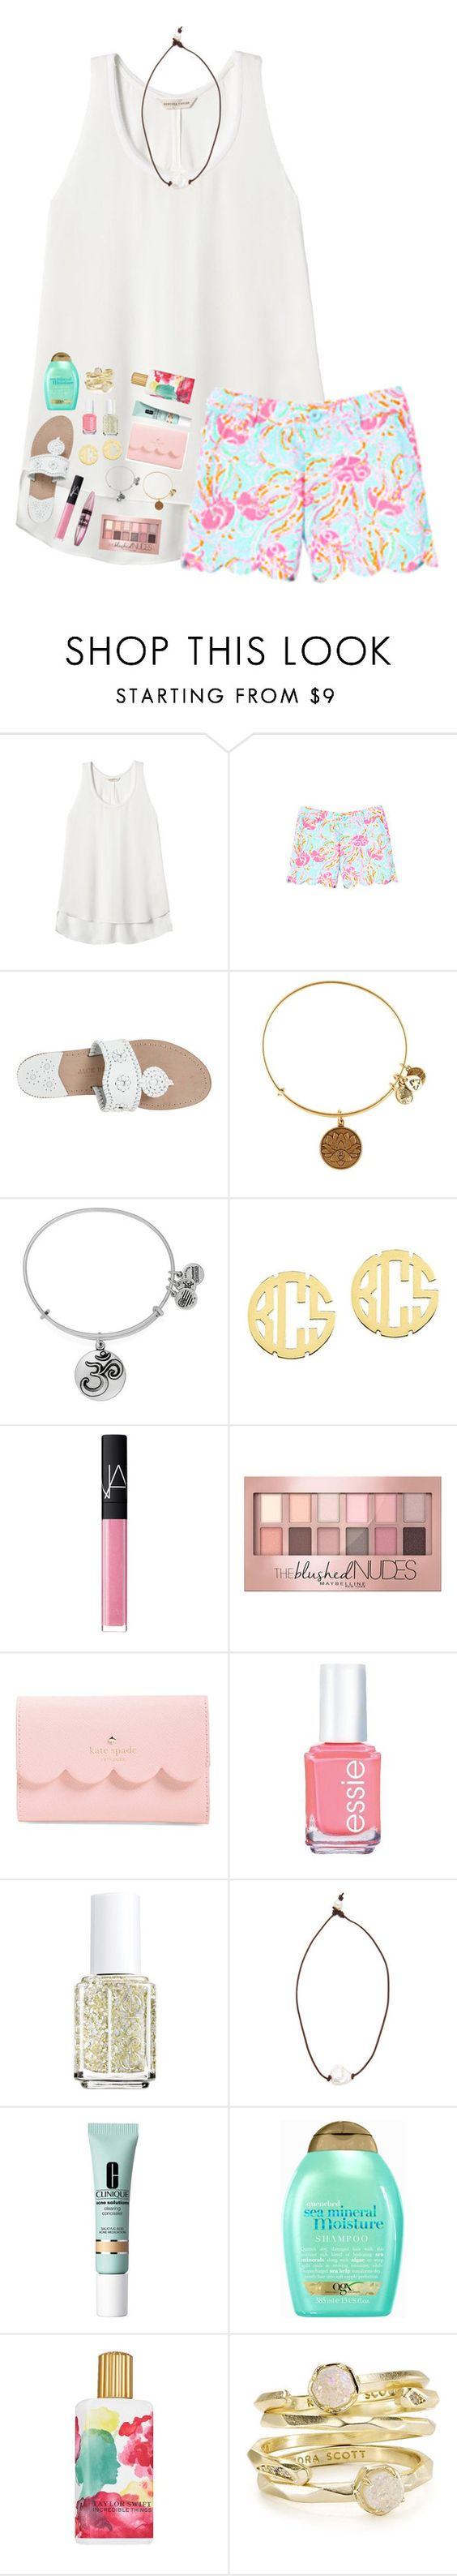 """""""we got to play Hamilton music in PE today🙃"""" by lindsaygreys ❤ liked on Polyvore featuring Rebecca Taylor, Lilly Pulitzer, Jack Rogers, Alex and Ani, QVC, NARS Cosmetics, Maybelline, Kate Spade, Essie and Lead"""